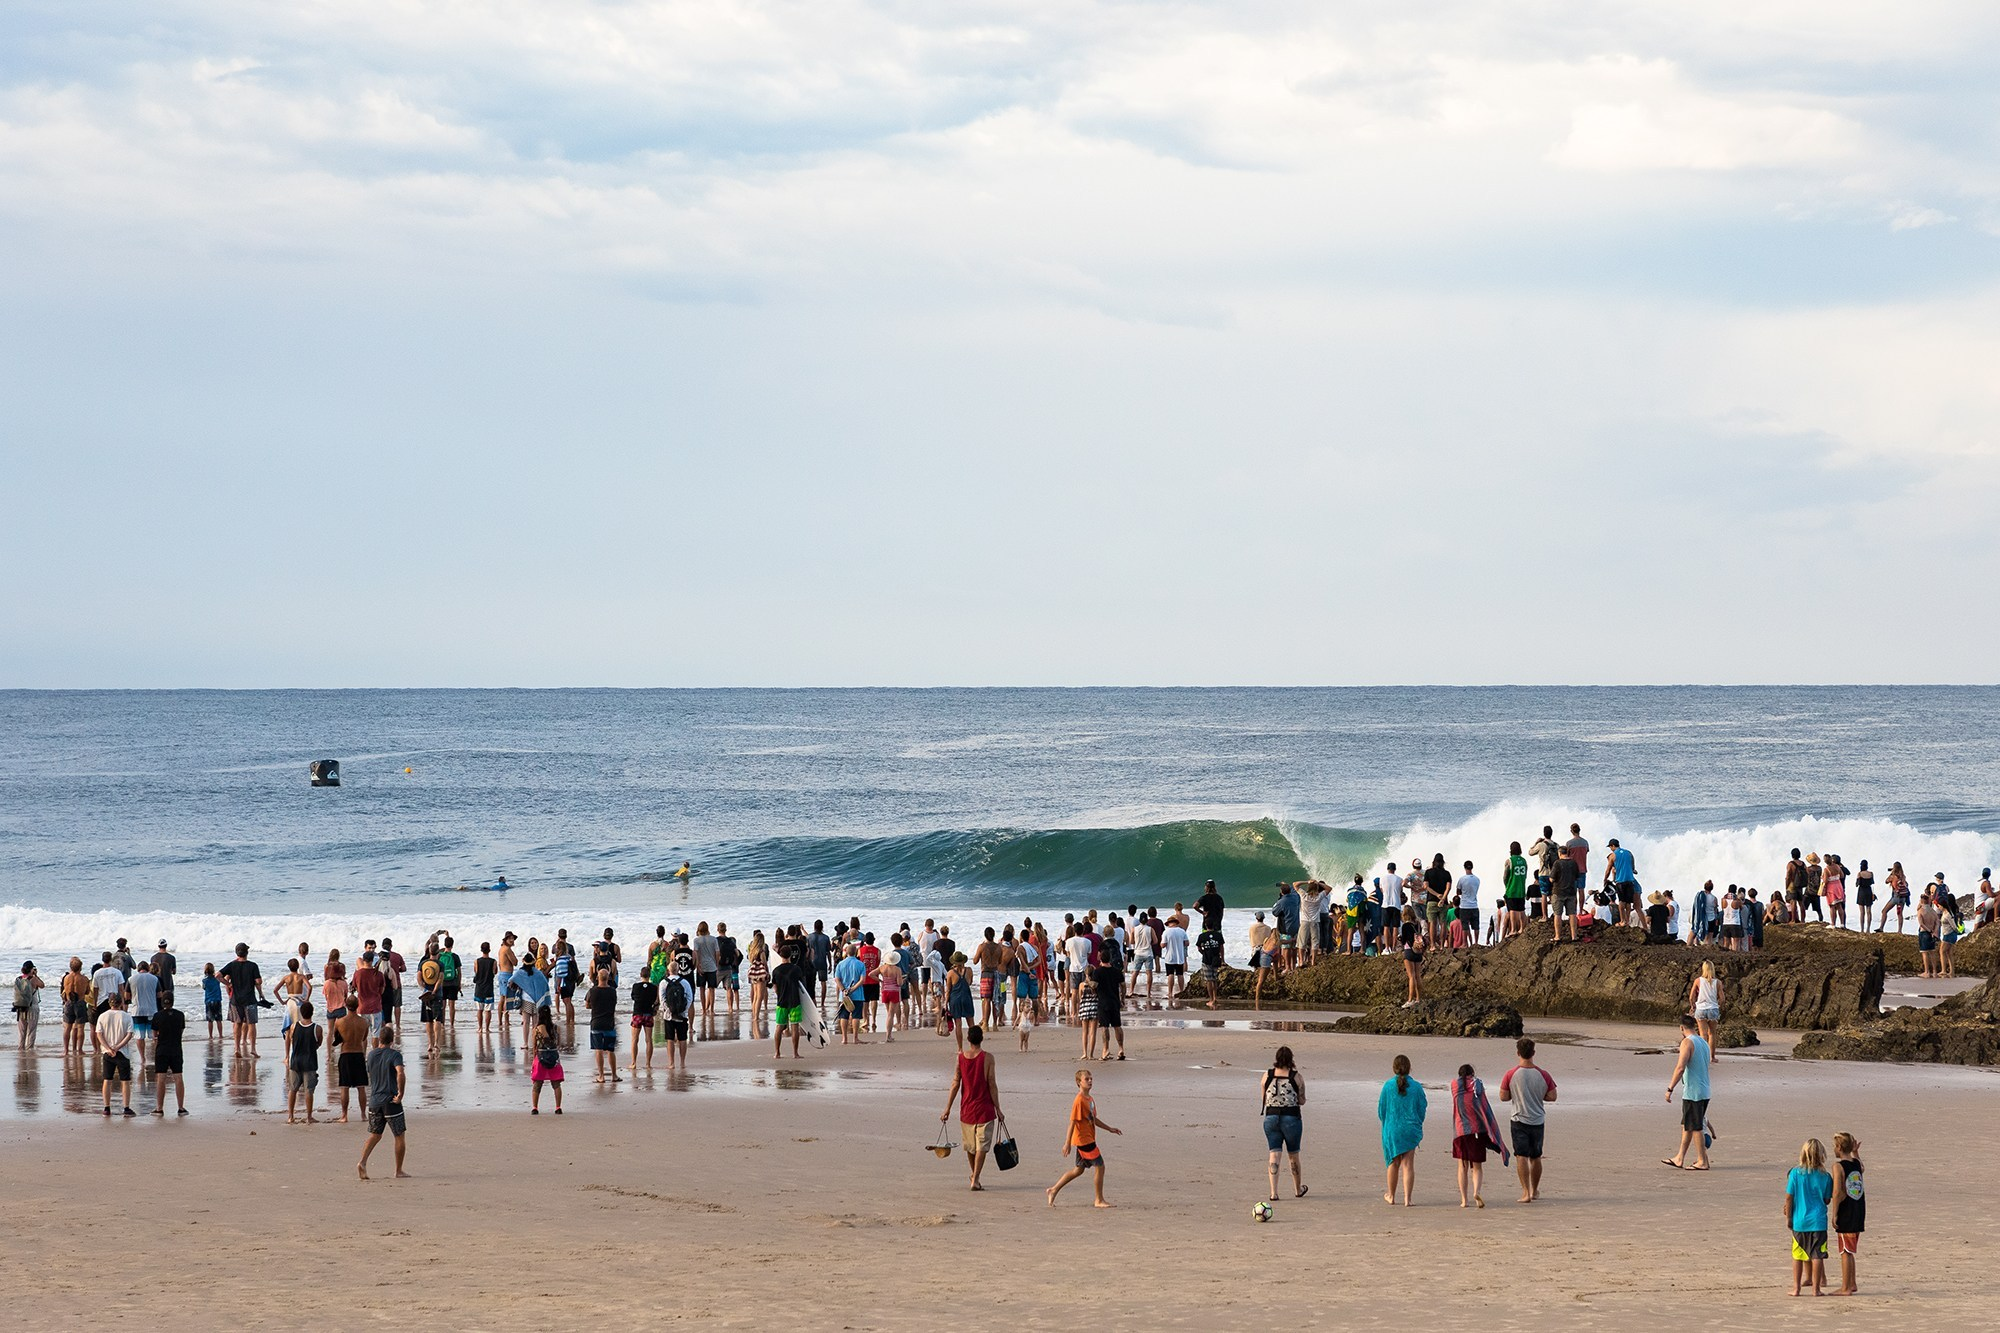 Word Surf League: Se posponen y cancelan eventos por Coronavirus